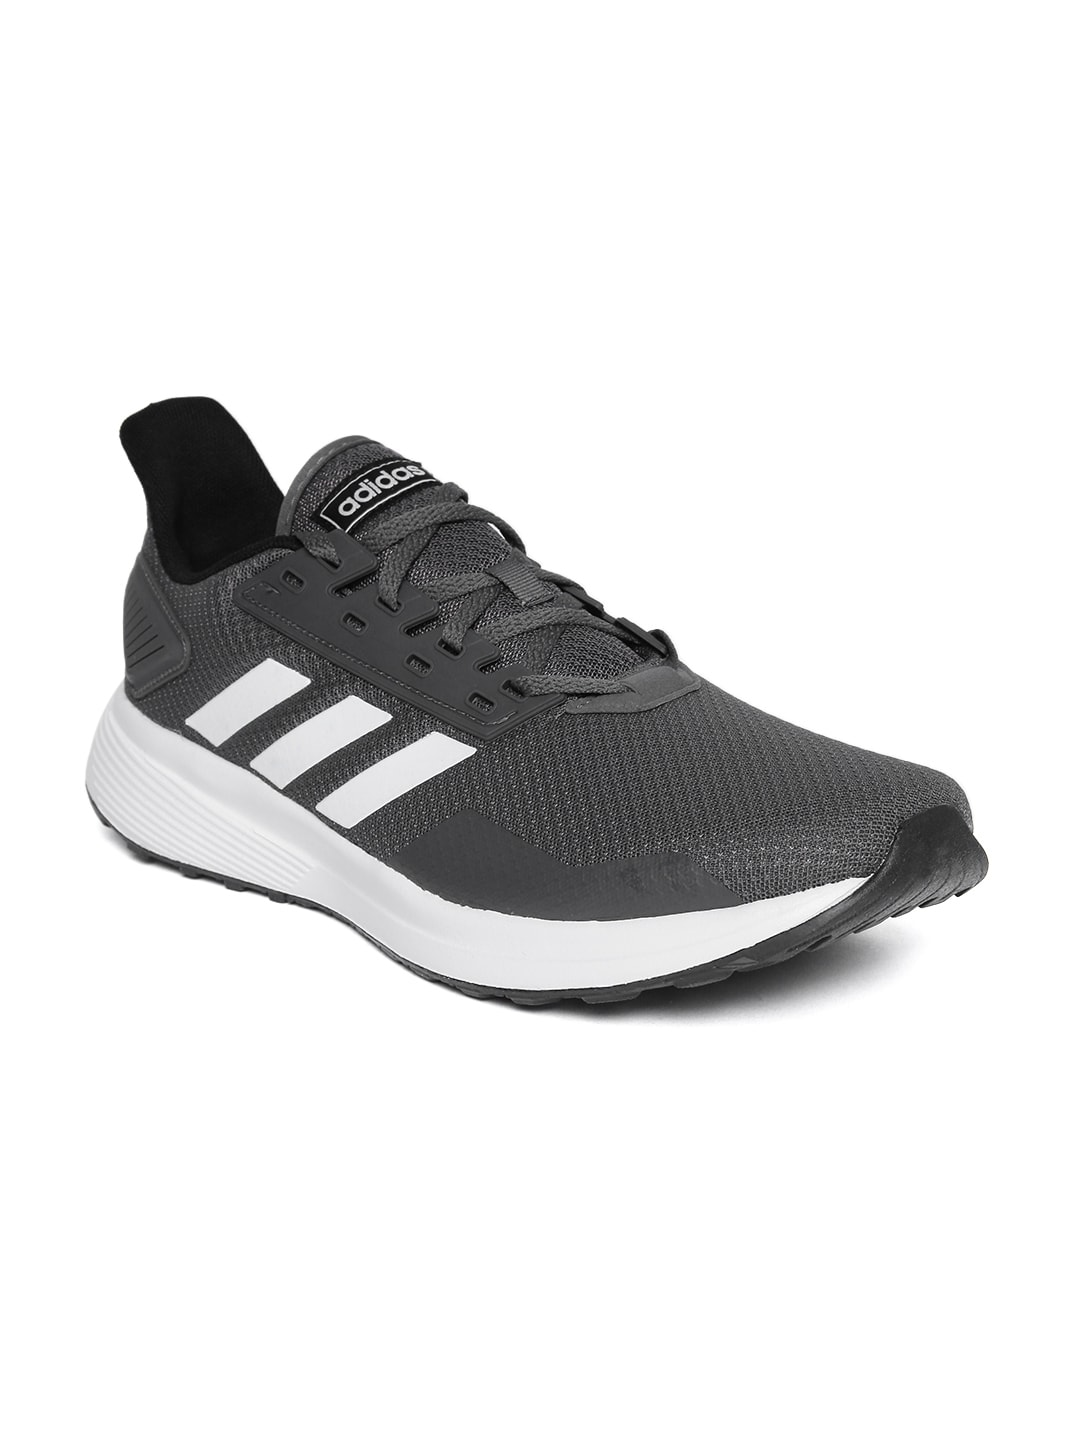 3d87a937c53 Adidas Running Shoes - Buy Adidas Running Shoes Online